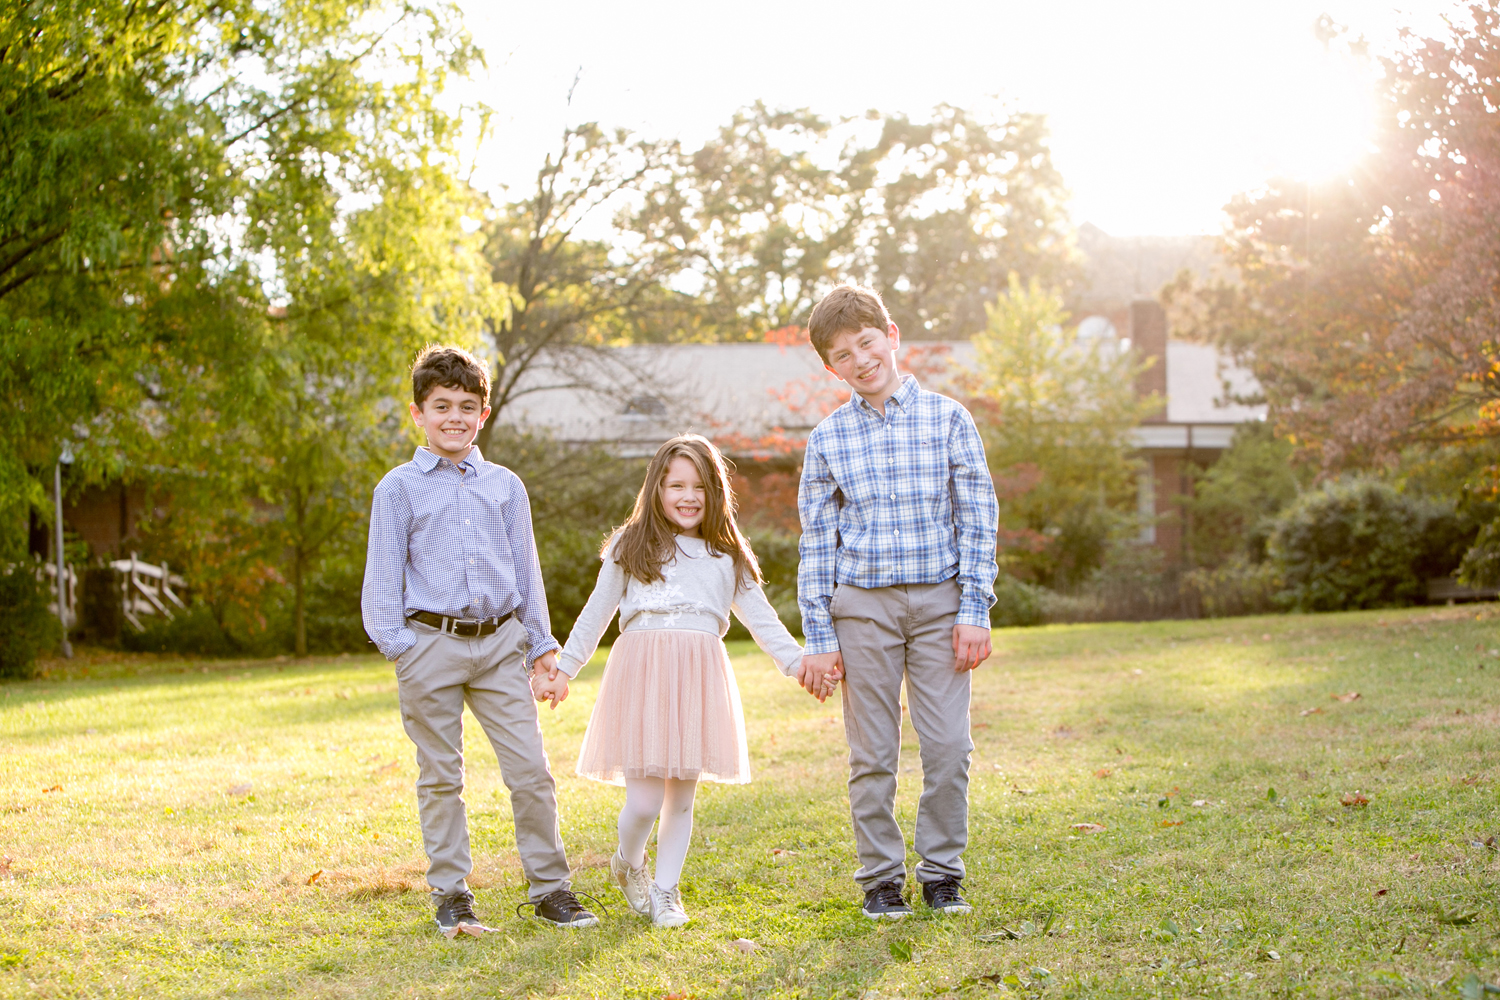 NJ_Family_Photographer_16.jpg